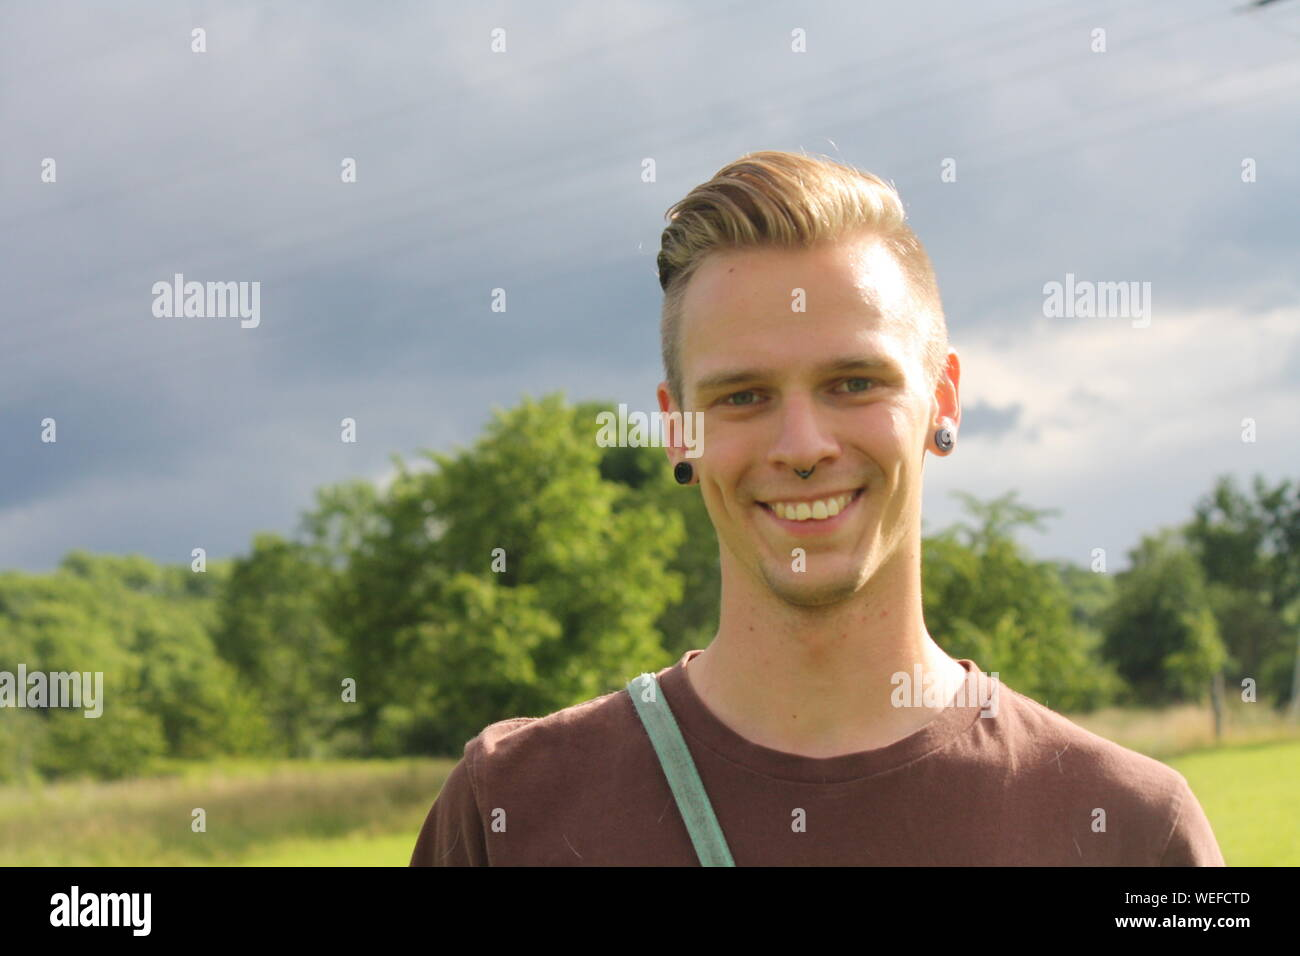 Portrait Of Young Man With Pierced Ears And Nose Against Sky Stock Photo